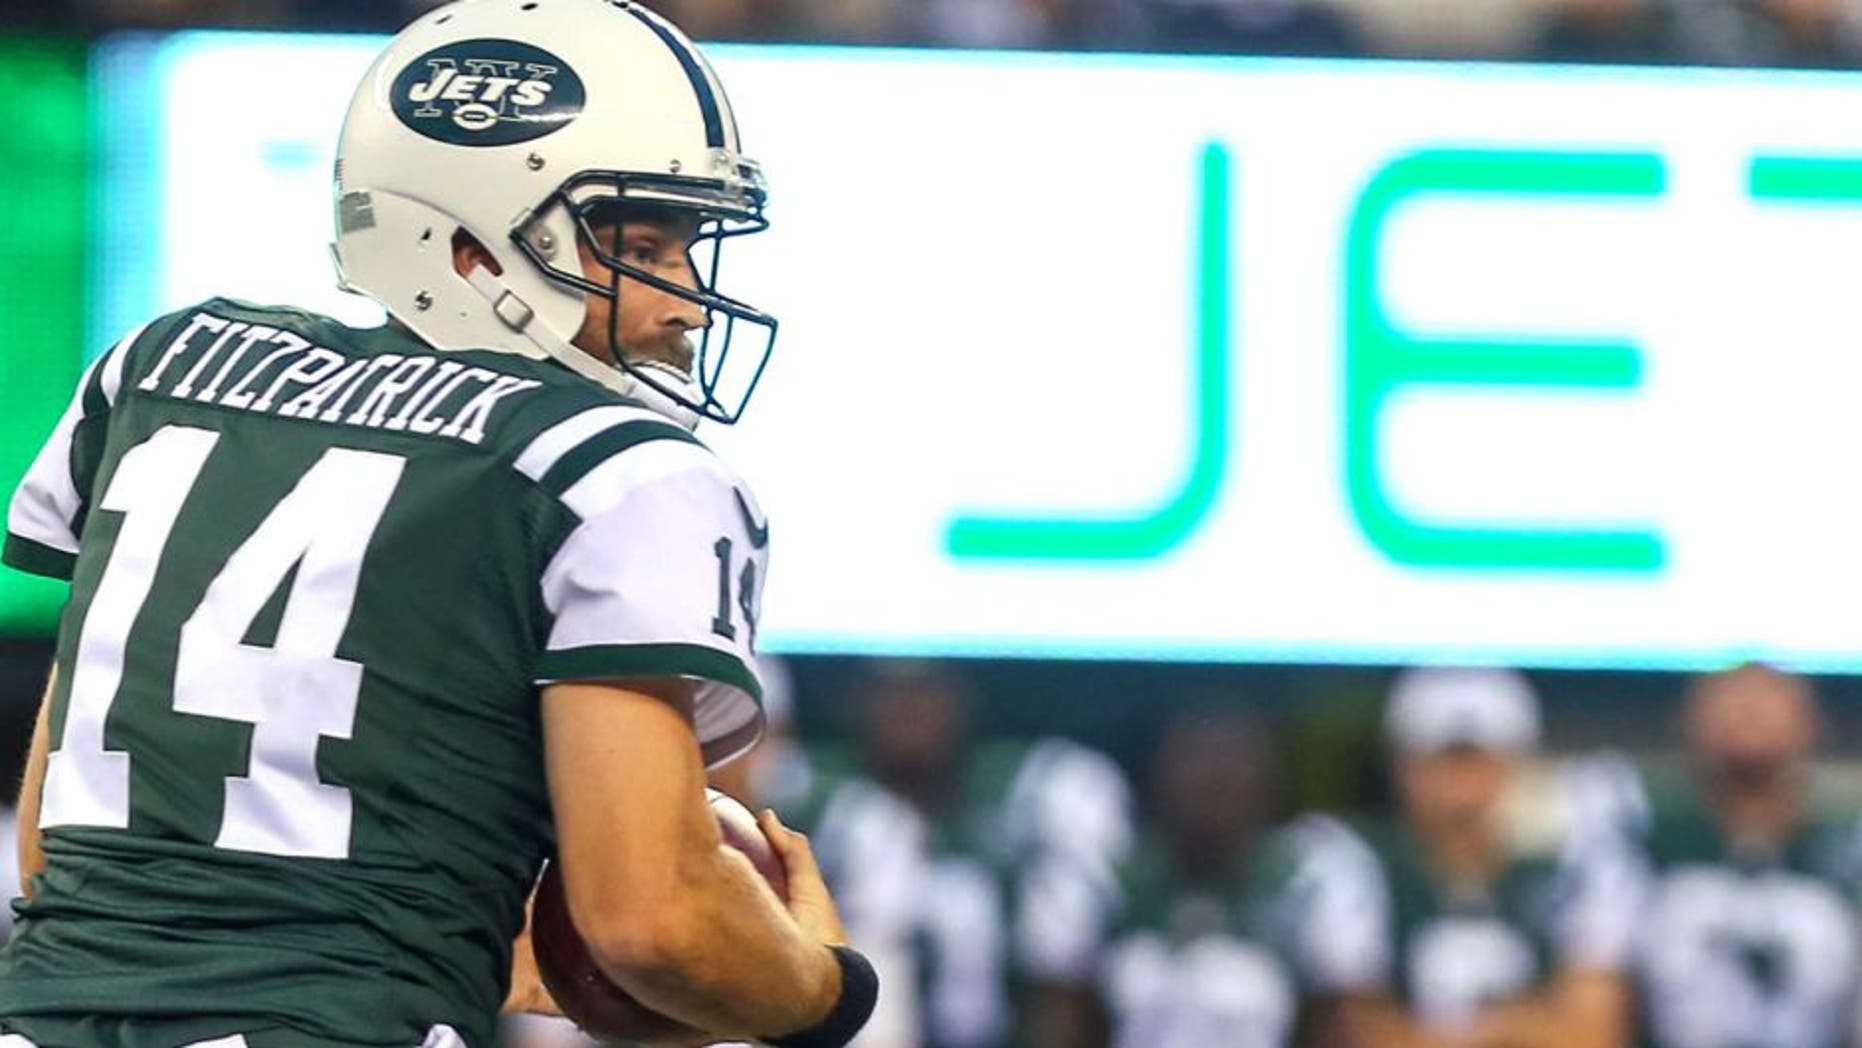 Aug 21, 2015; East Rutherford, NJ, USA; New York Jets quarterback Ryan Fitzpatrick (14) runs with the ball during the first half at MetLife Stadium. Mandatory Credit: Ed Mulholland-USA TODAY Sports